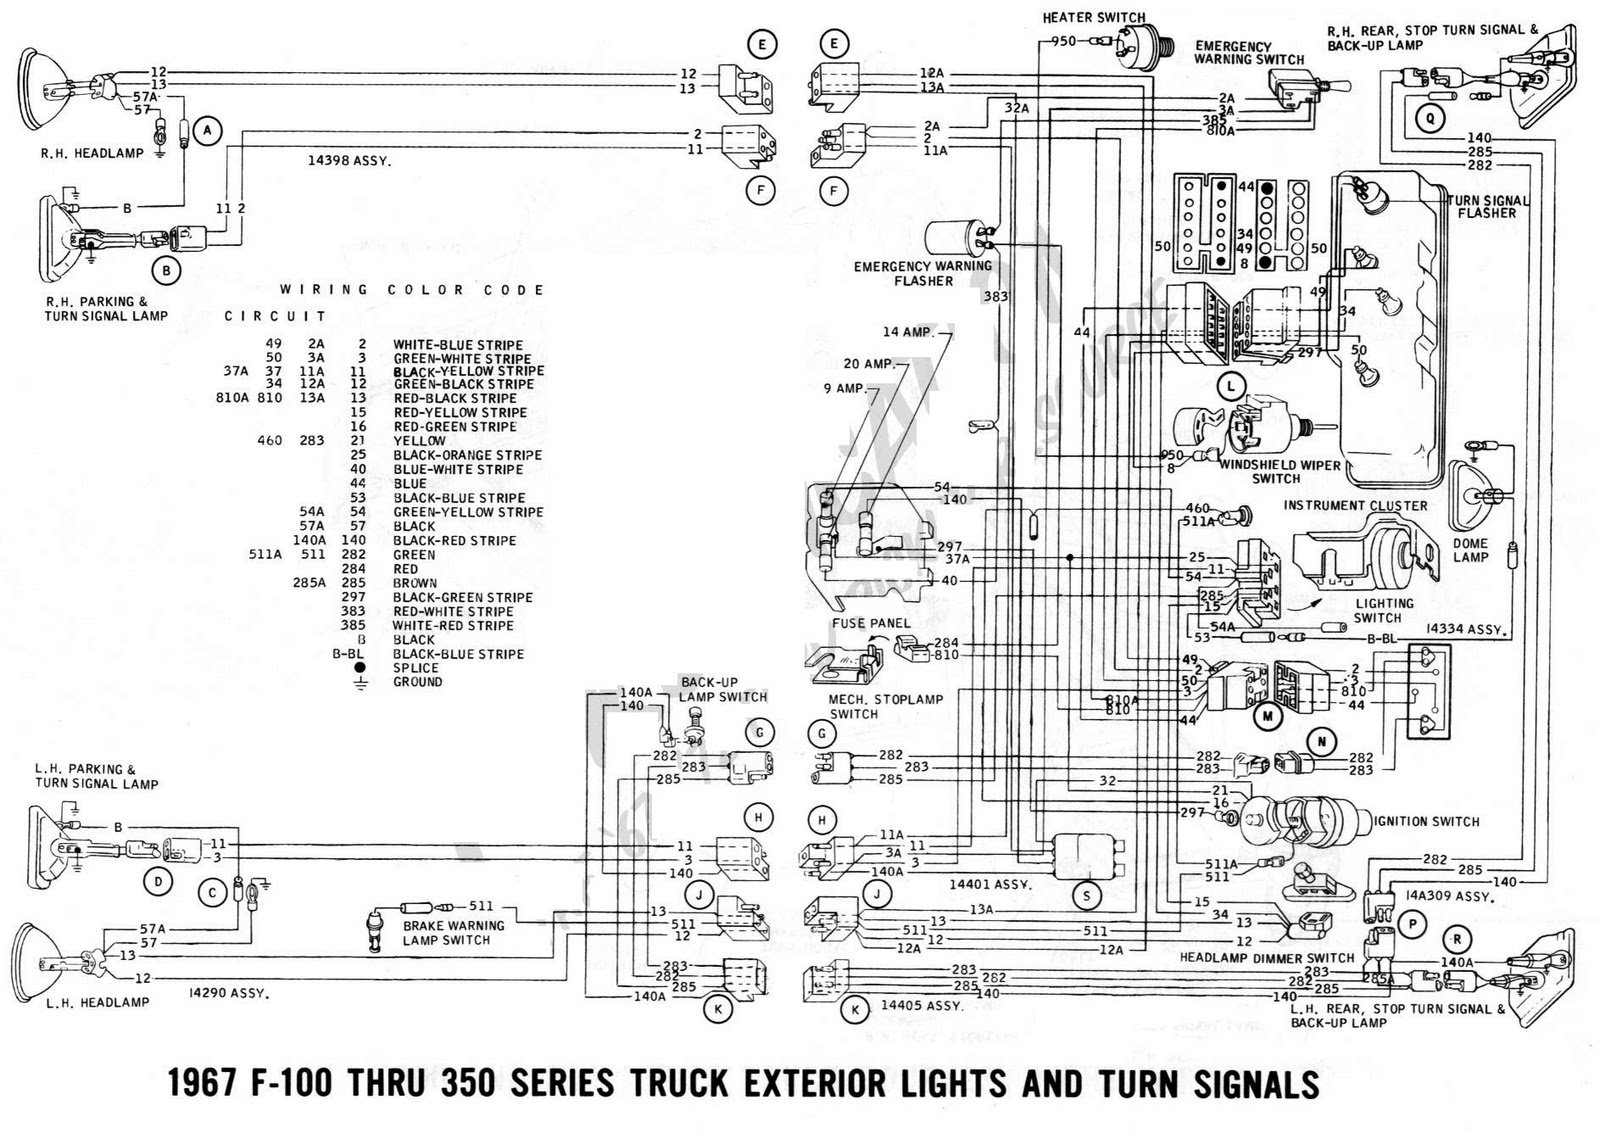 1969 chevy truck turn signal wiring diagram get free chevrolet turn signal wiring diagram turn signal [ 1600 x 1133 Pixel ]